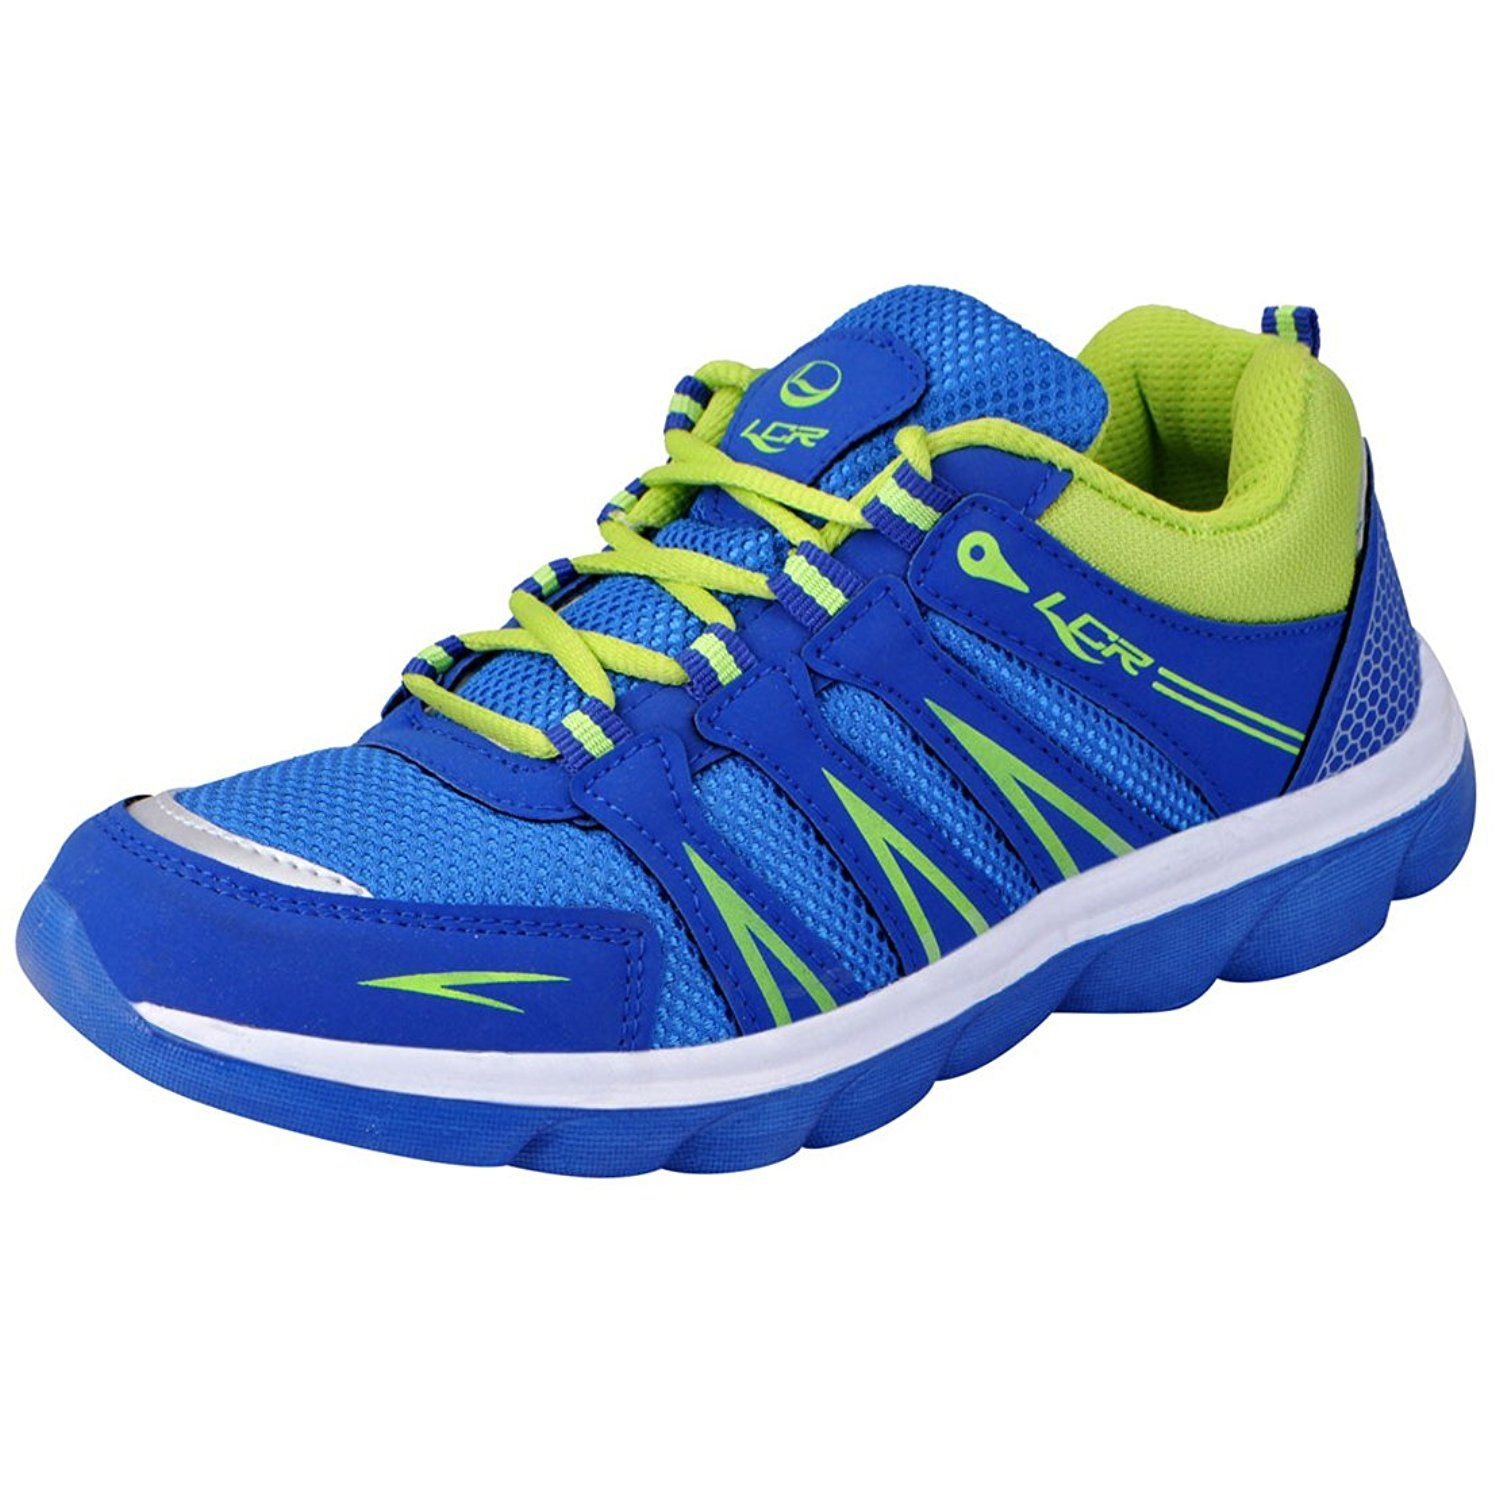 53316688ae4 Lancer Men s Sports Runnning Shoes  Buy Online at Low Prices in India -  Amazon.